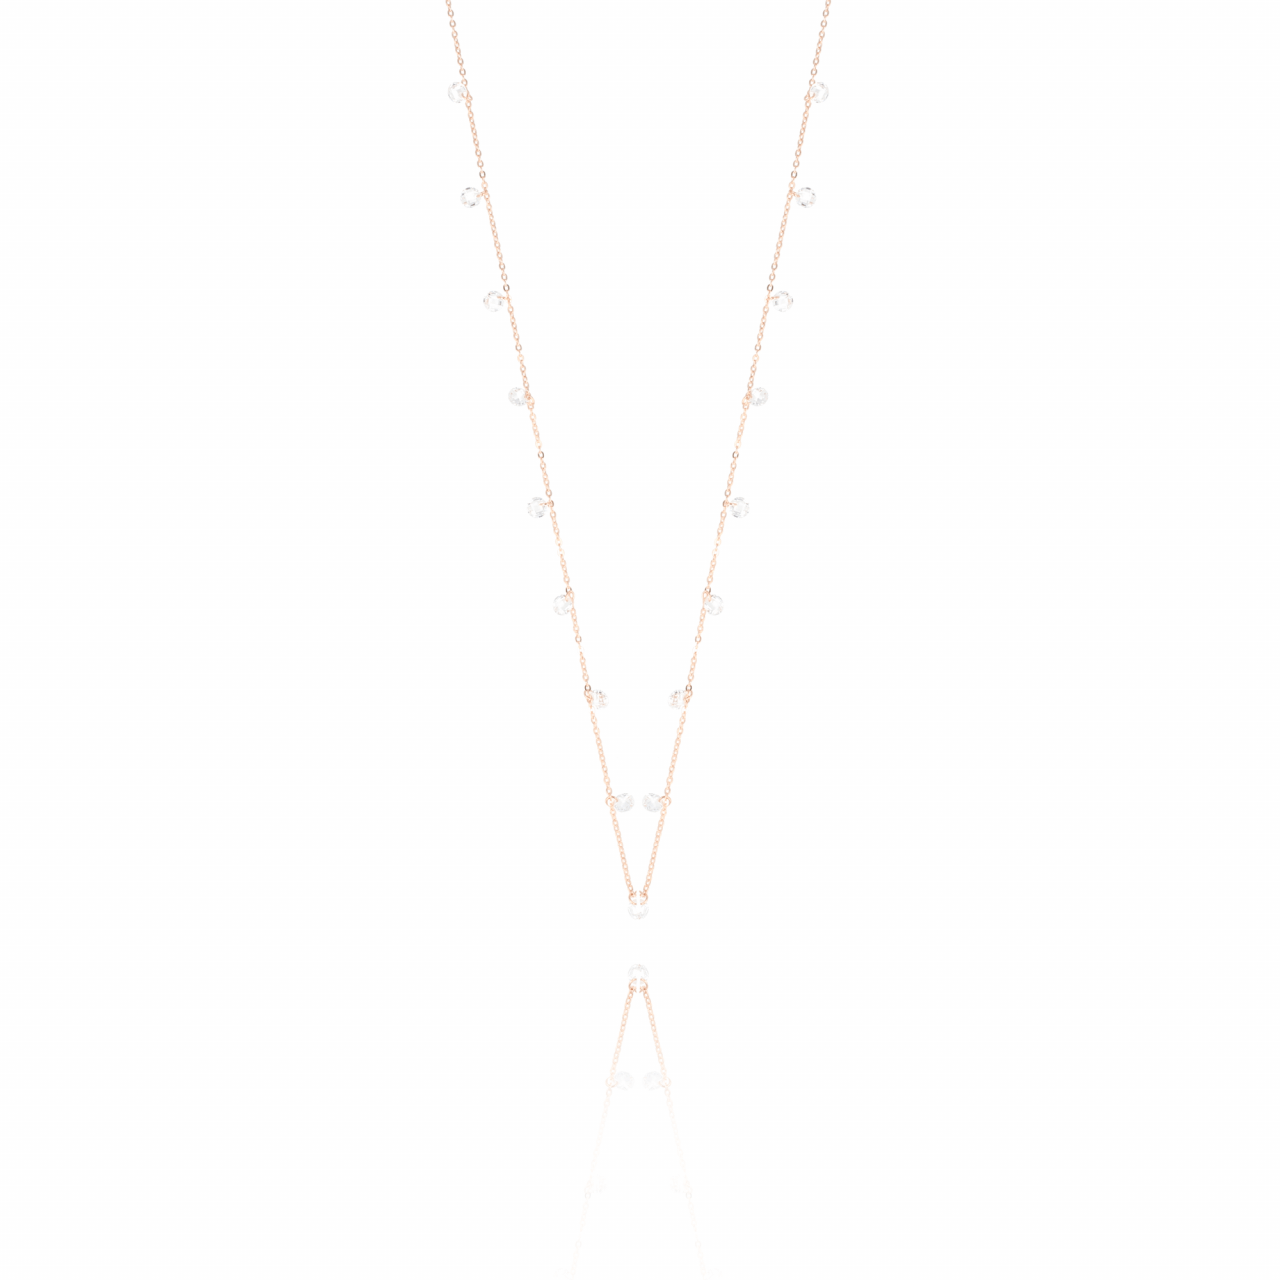 Rosé Crystal Stones ketting